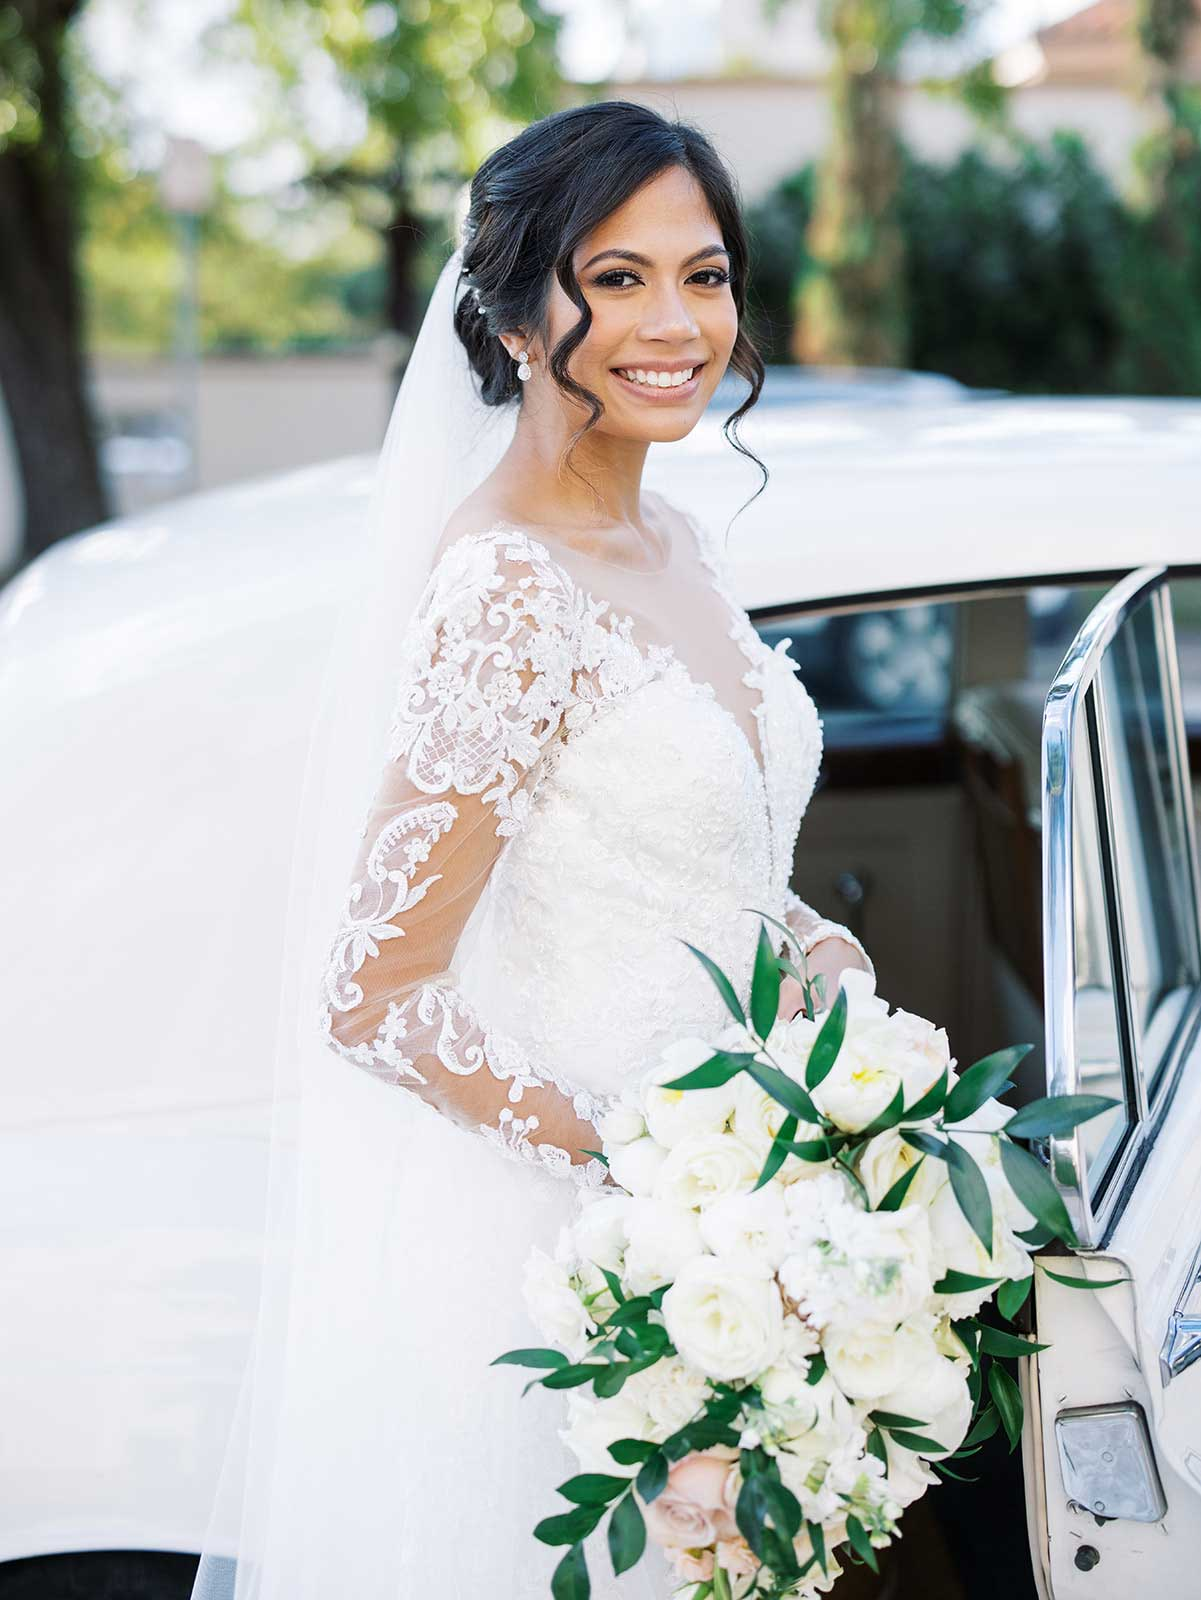 bride smiles near wedding car holding her bouquet with white roses.